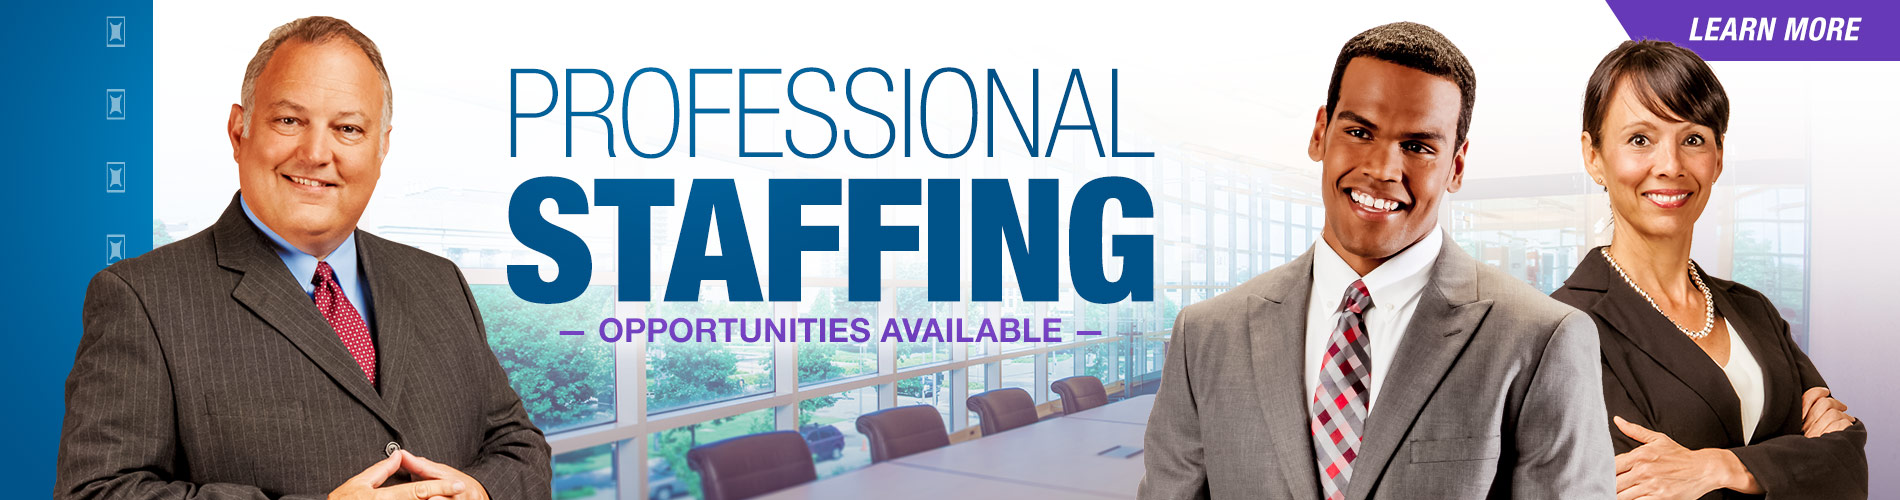 Professional Staffing Banner